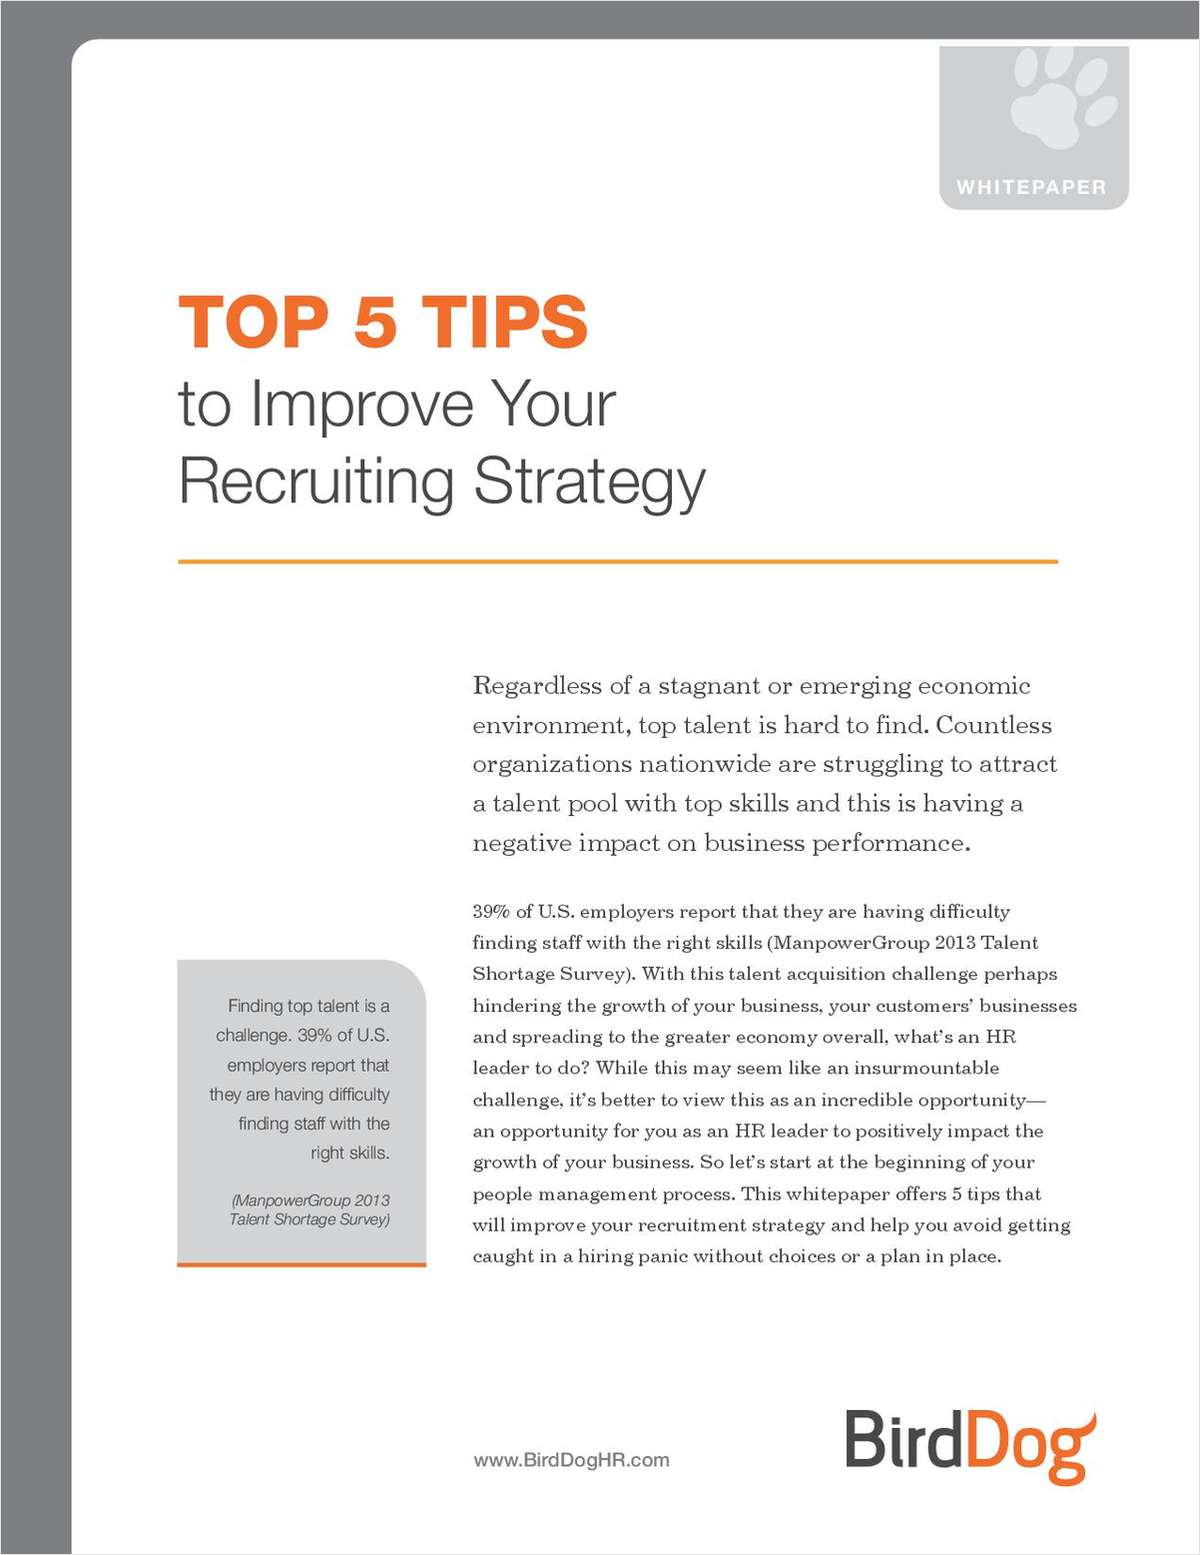 Top 5 Tips to Improve Your Recruiting Strategy